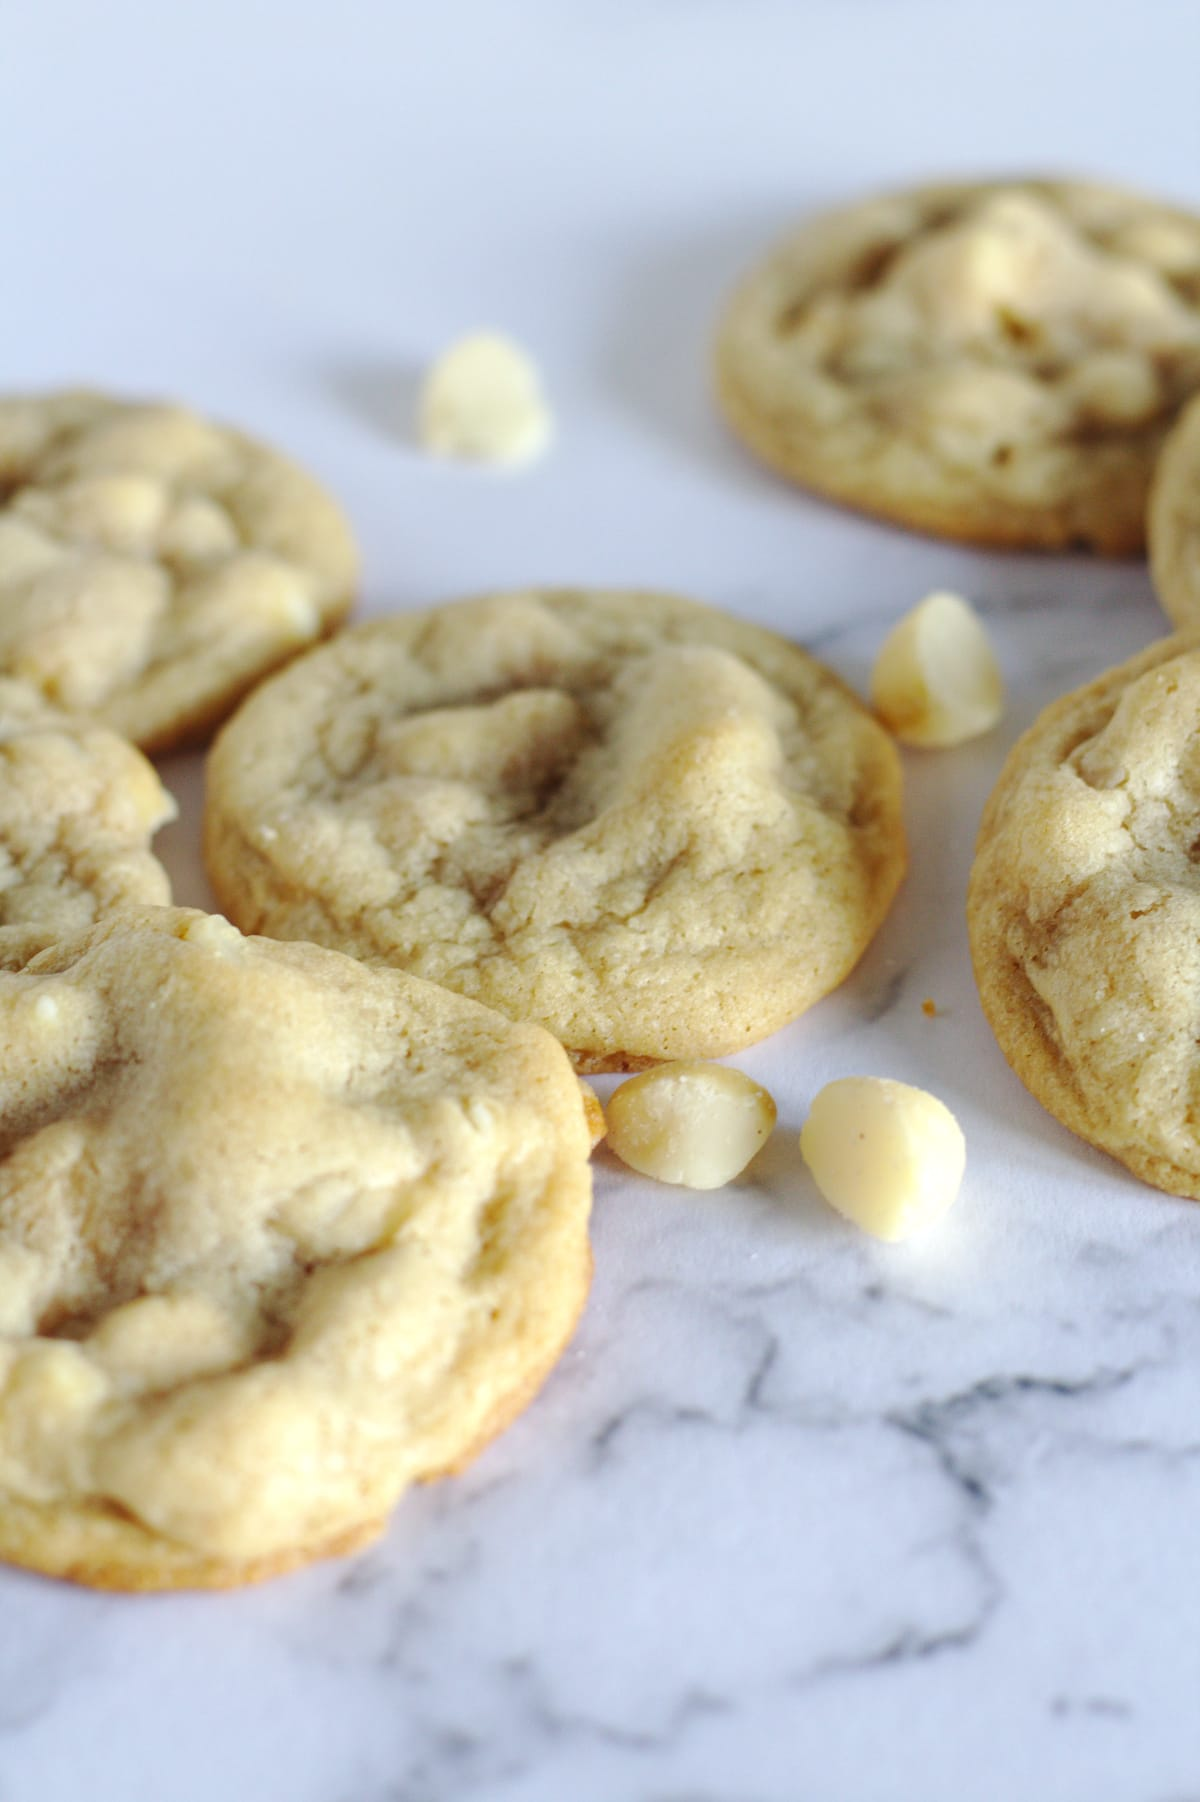 Cookies with white chocolate chips around them.